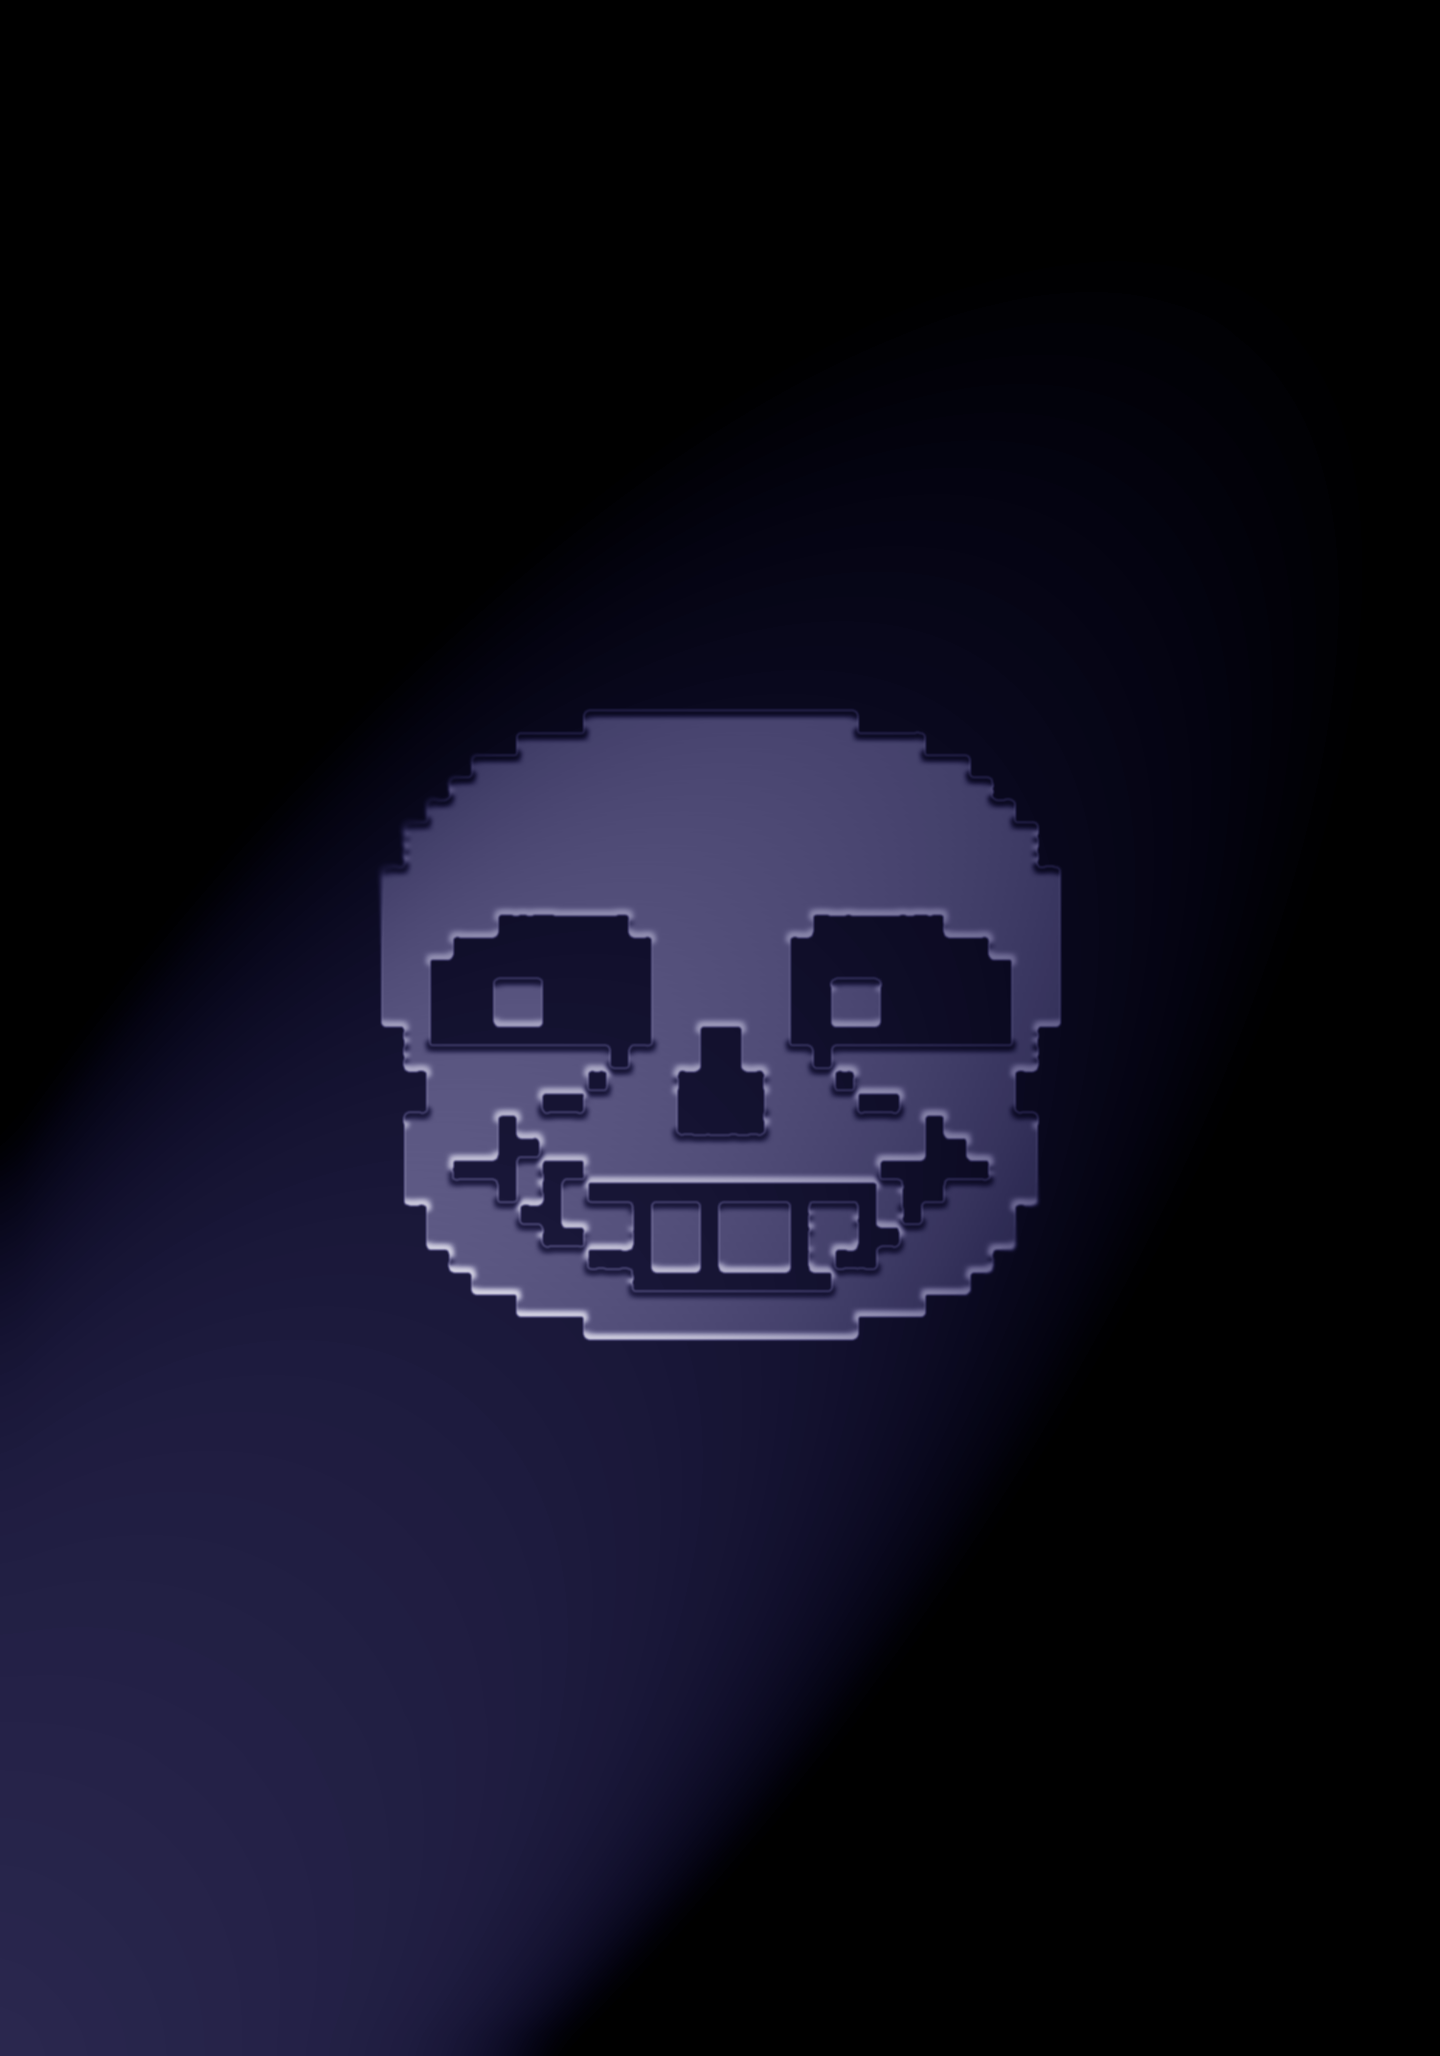 undertale sans wallpaper Buscar con Google Undertale